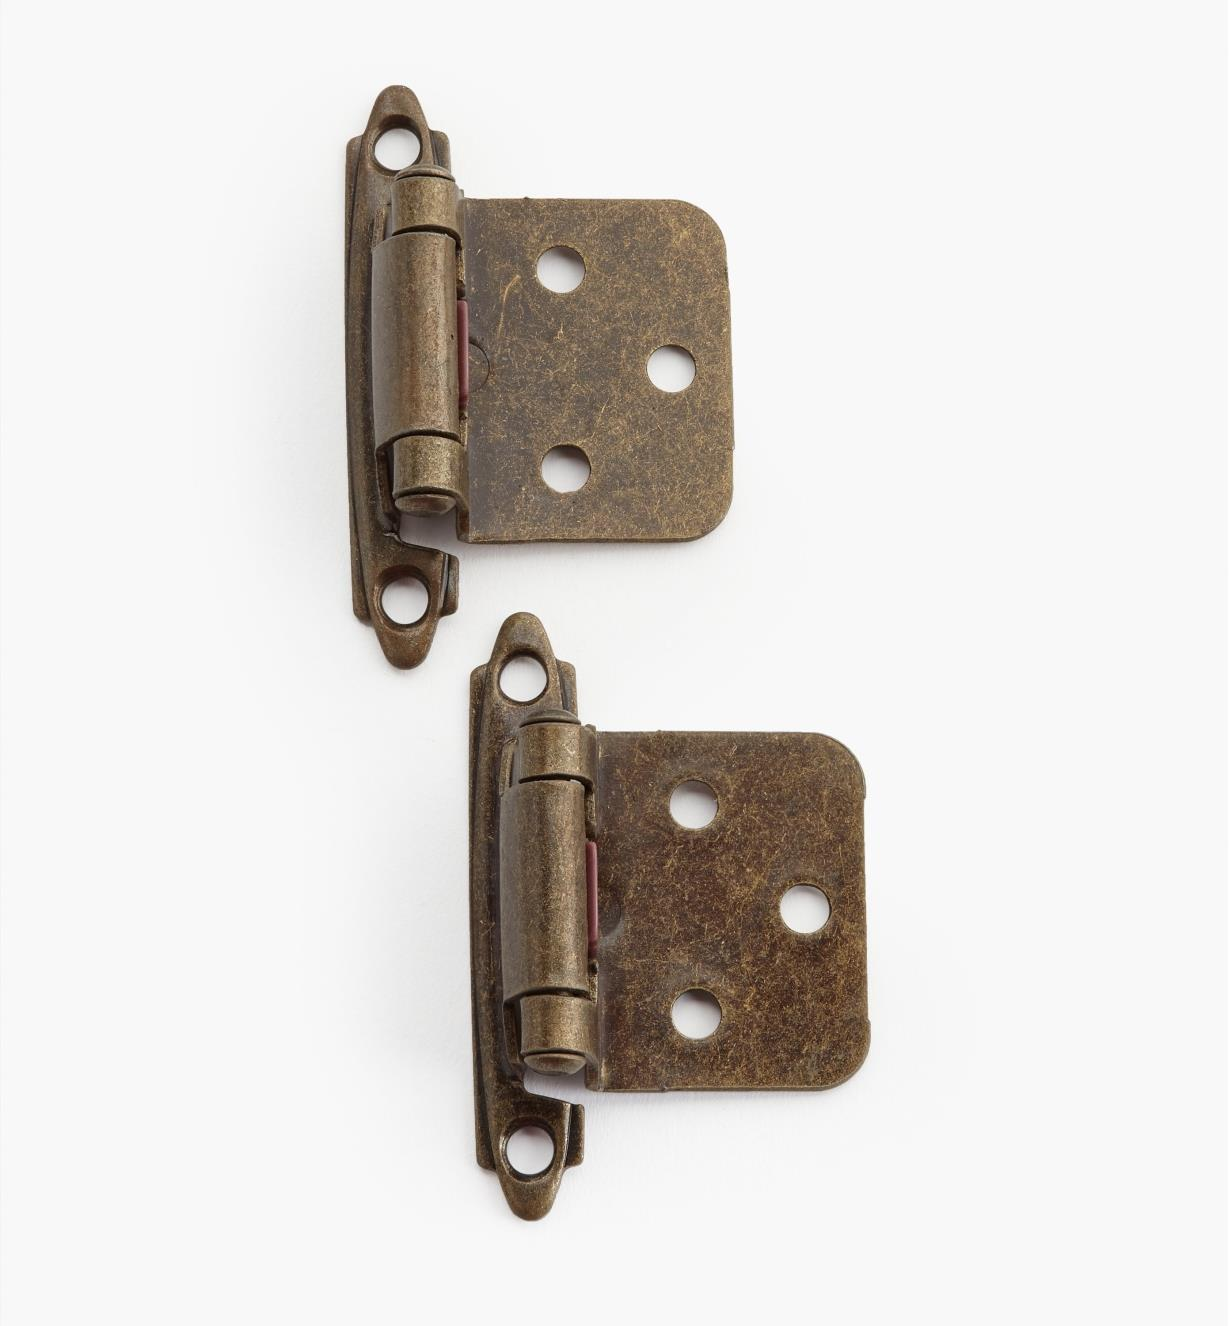 02H1341 - Antique Brass Flush-Mount Self-Closing Hinges, pair